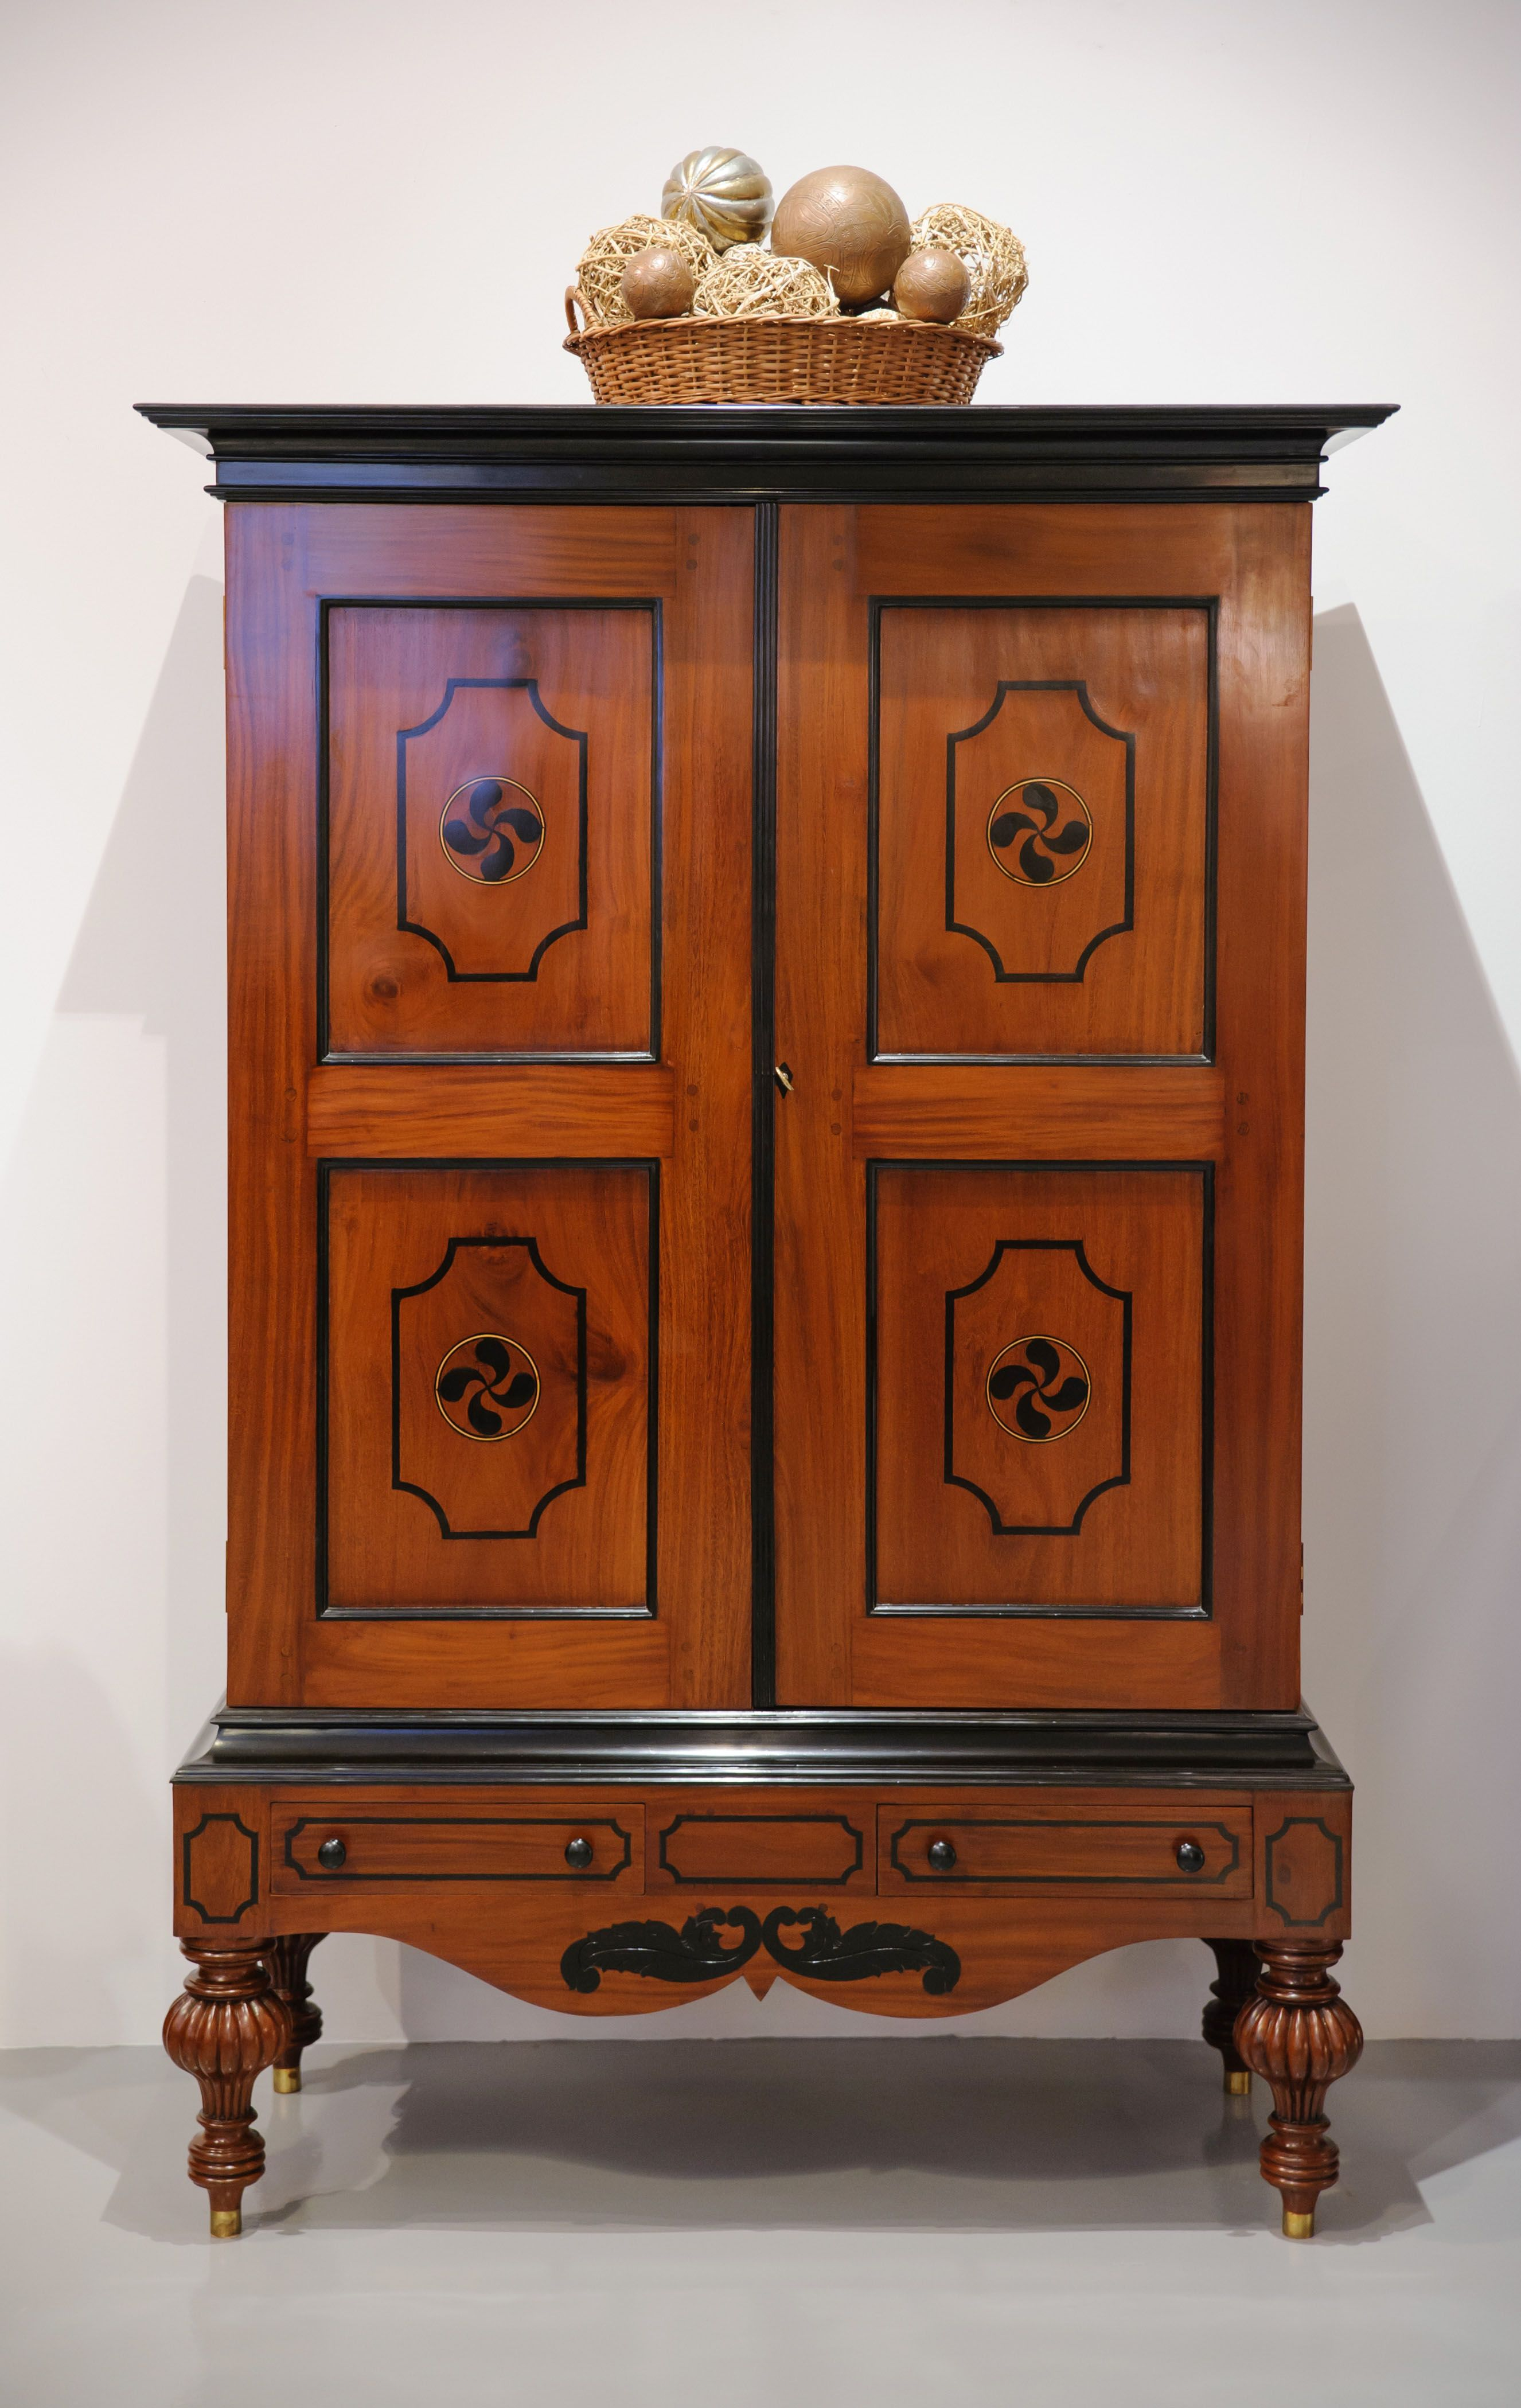 Incroyable Stylish Antique Furniture From The Past Perfect Collection | Singapore |  Travelshopa